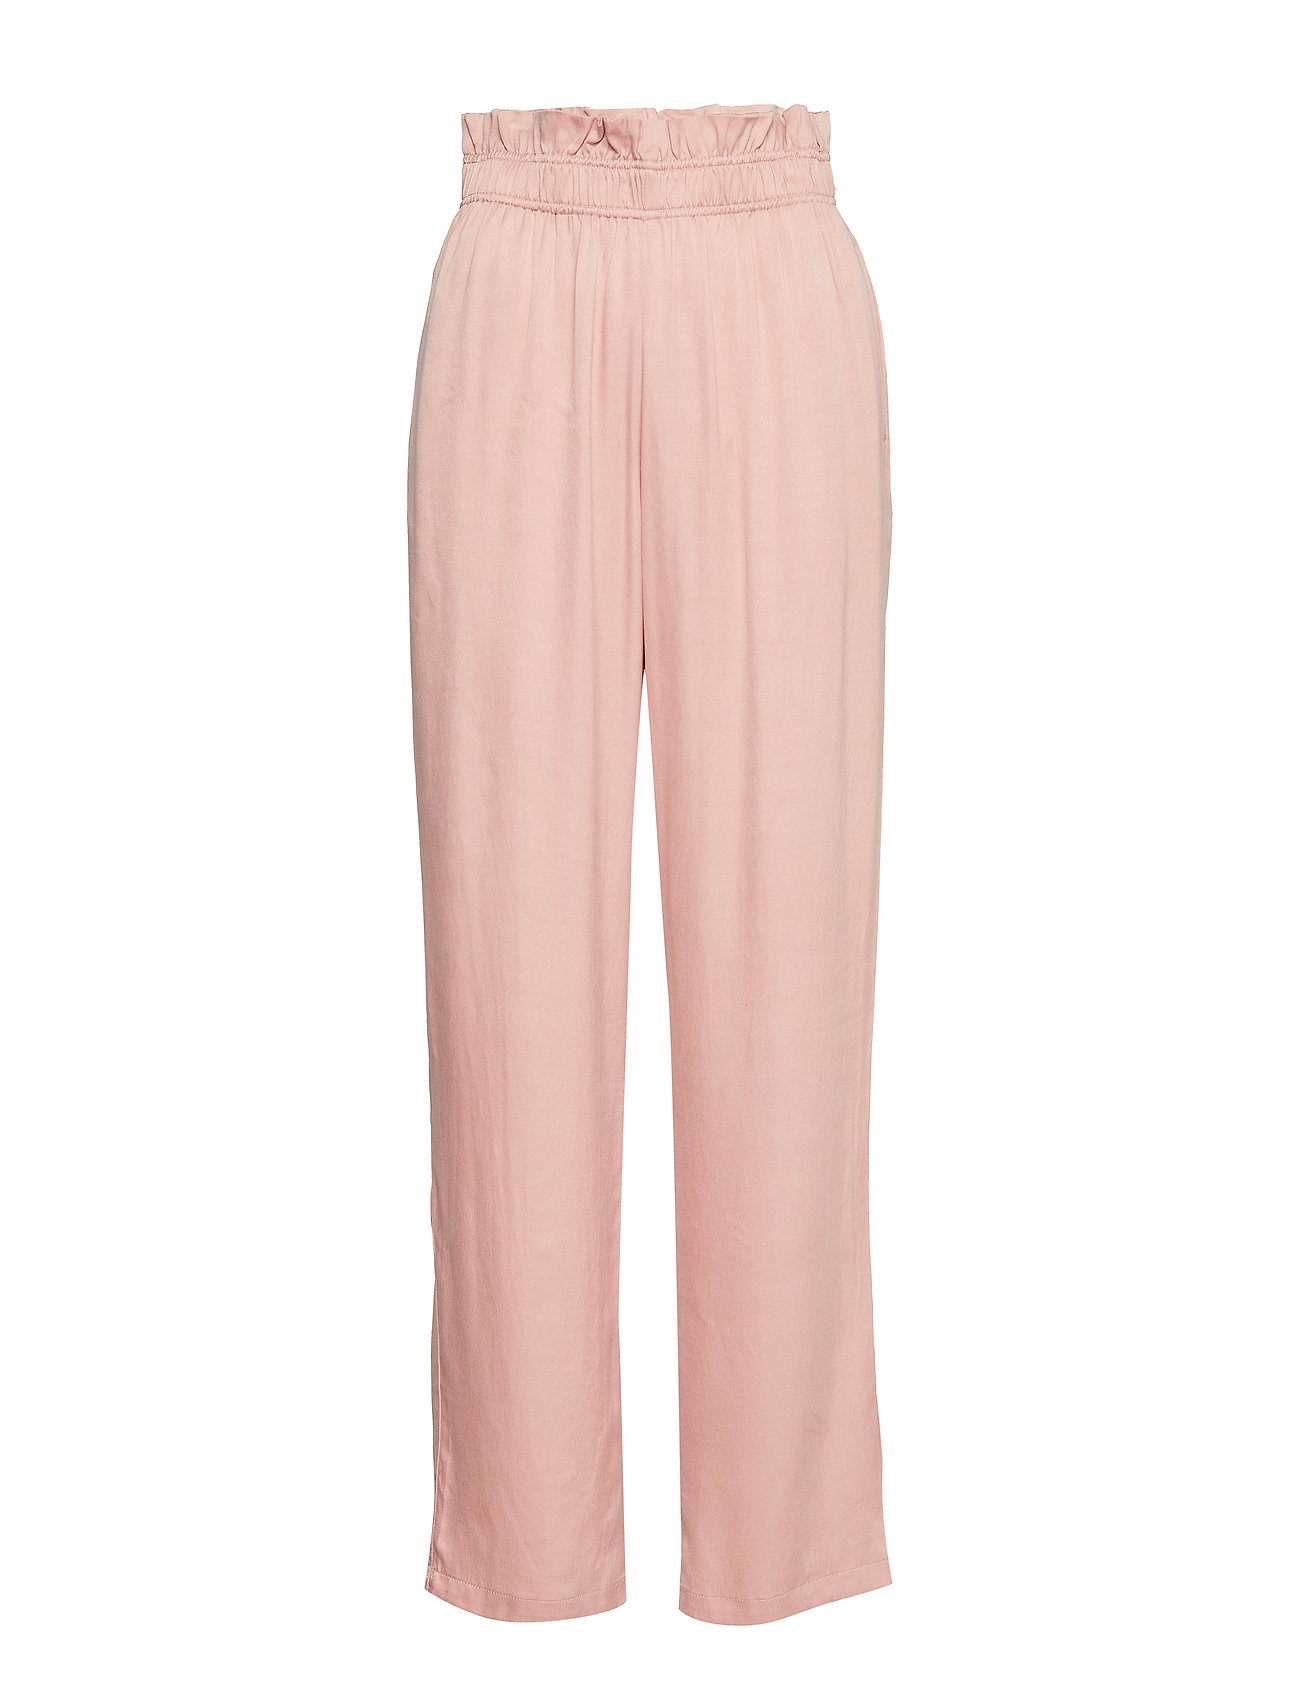 Samsøe & Samsøe Malayo pants 9941 - ROSE TAN